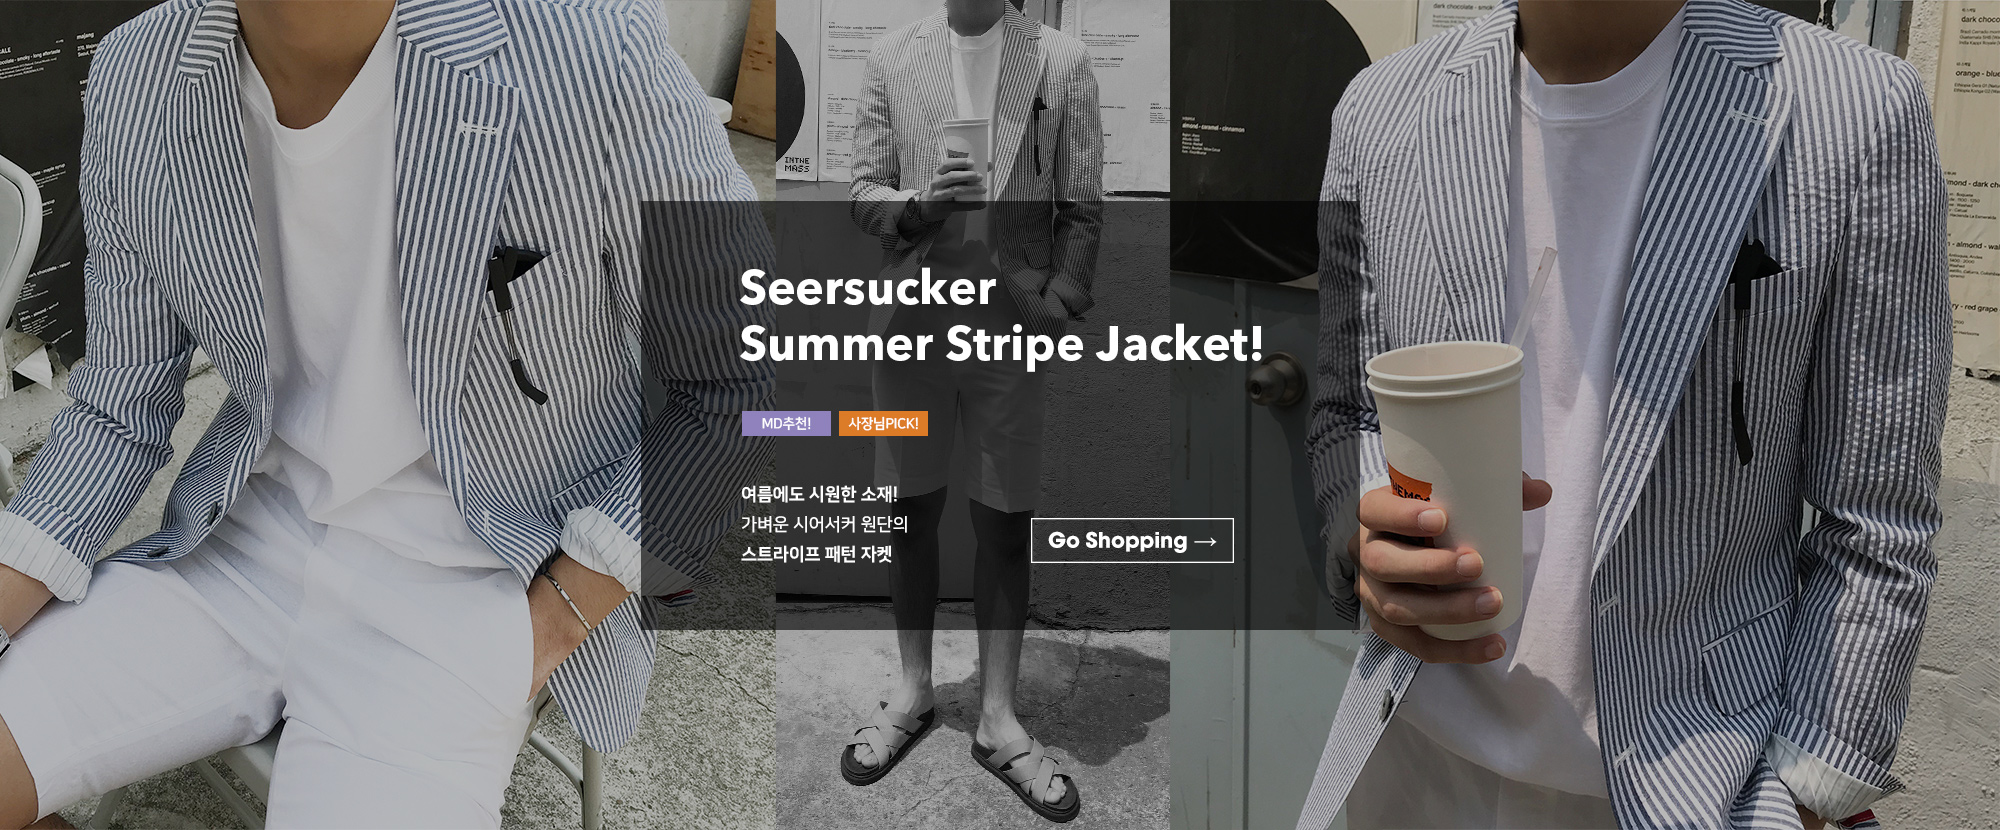 Summer Stripe Jacket!